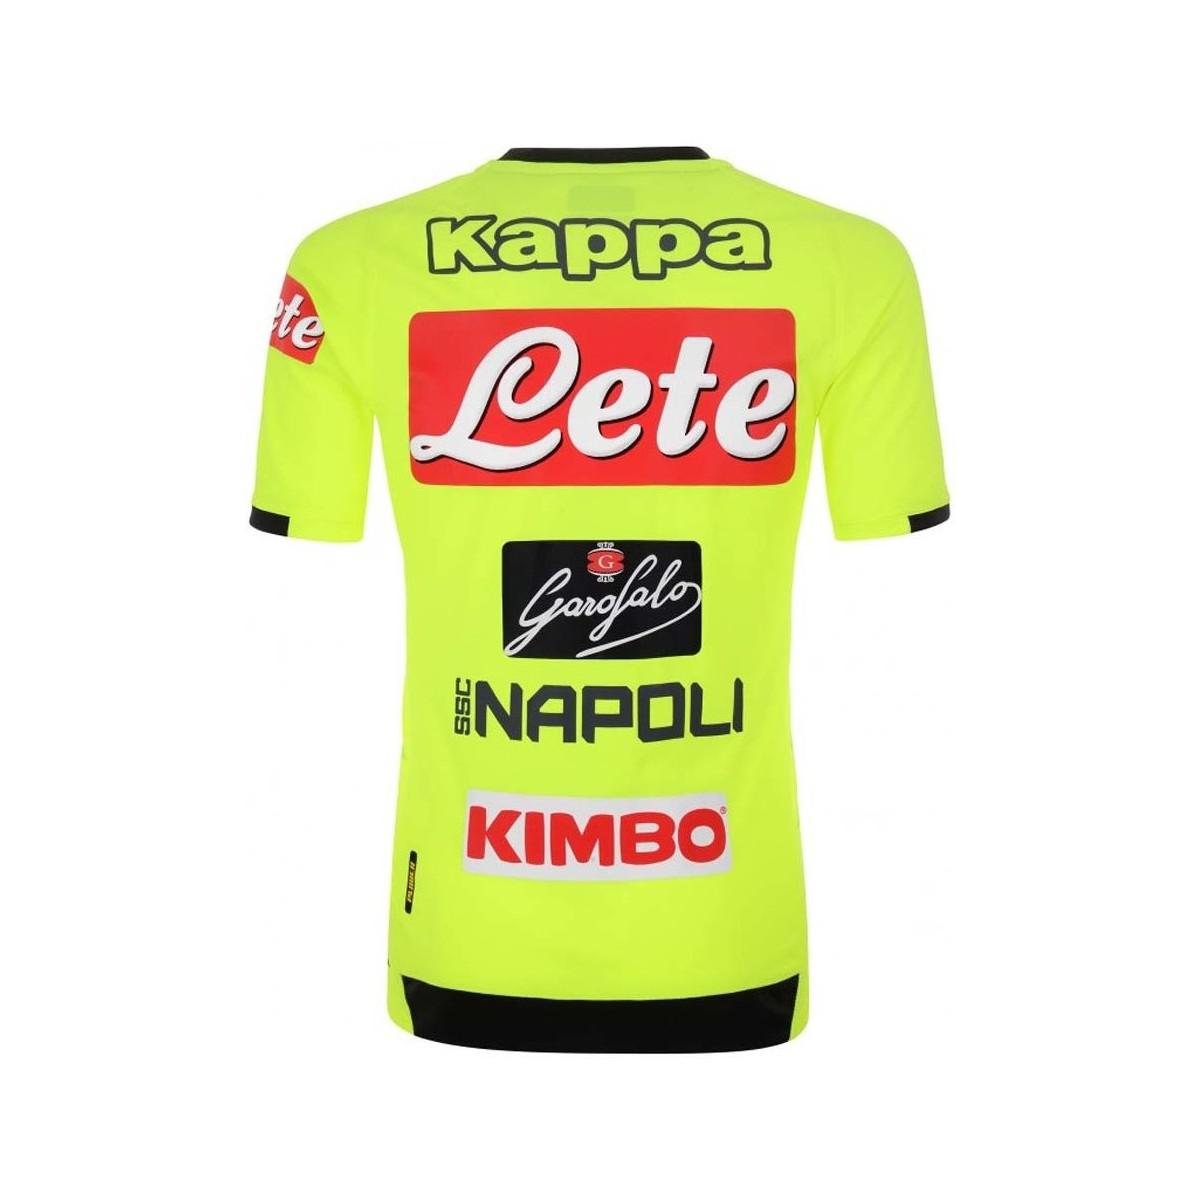 Kappa 2018-2019 Napoli Training Jersey Men s T Shirt In Other for ... 4f5bd9f0d9e09